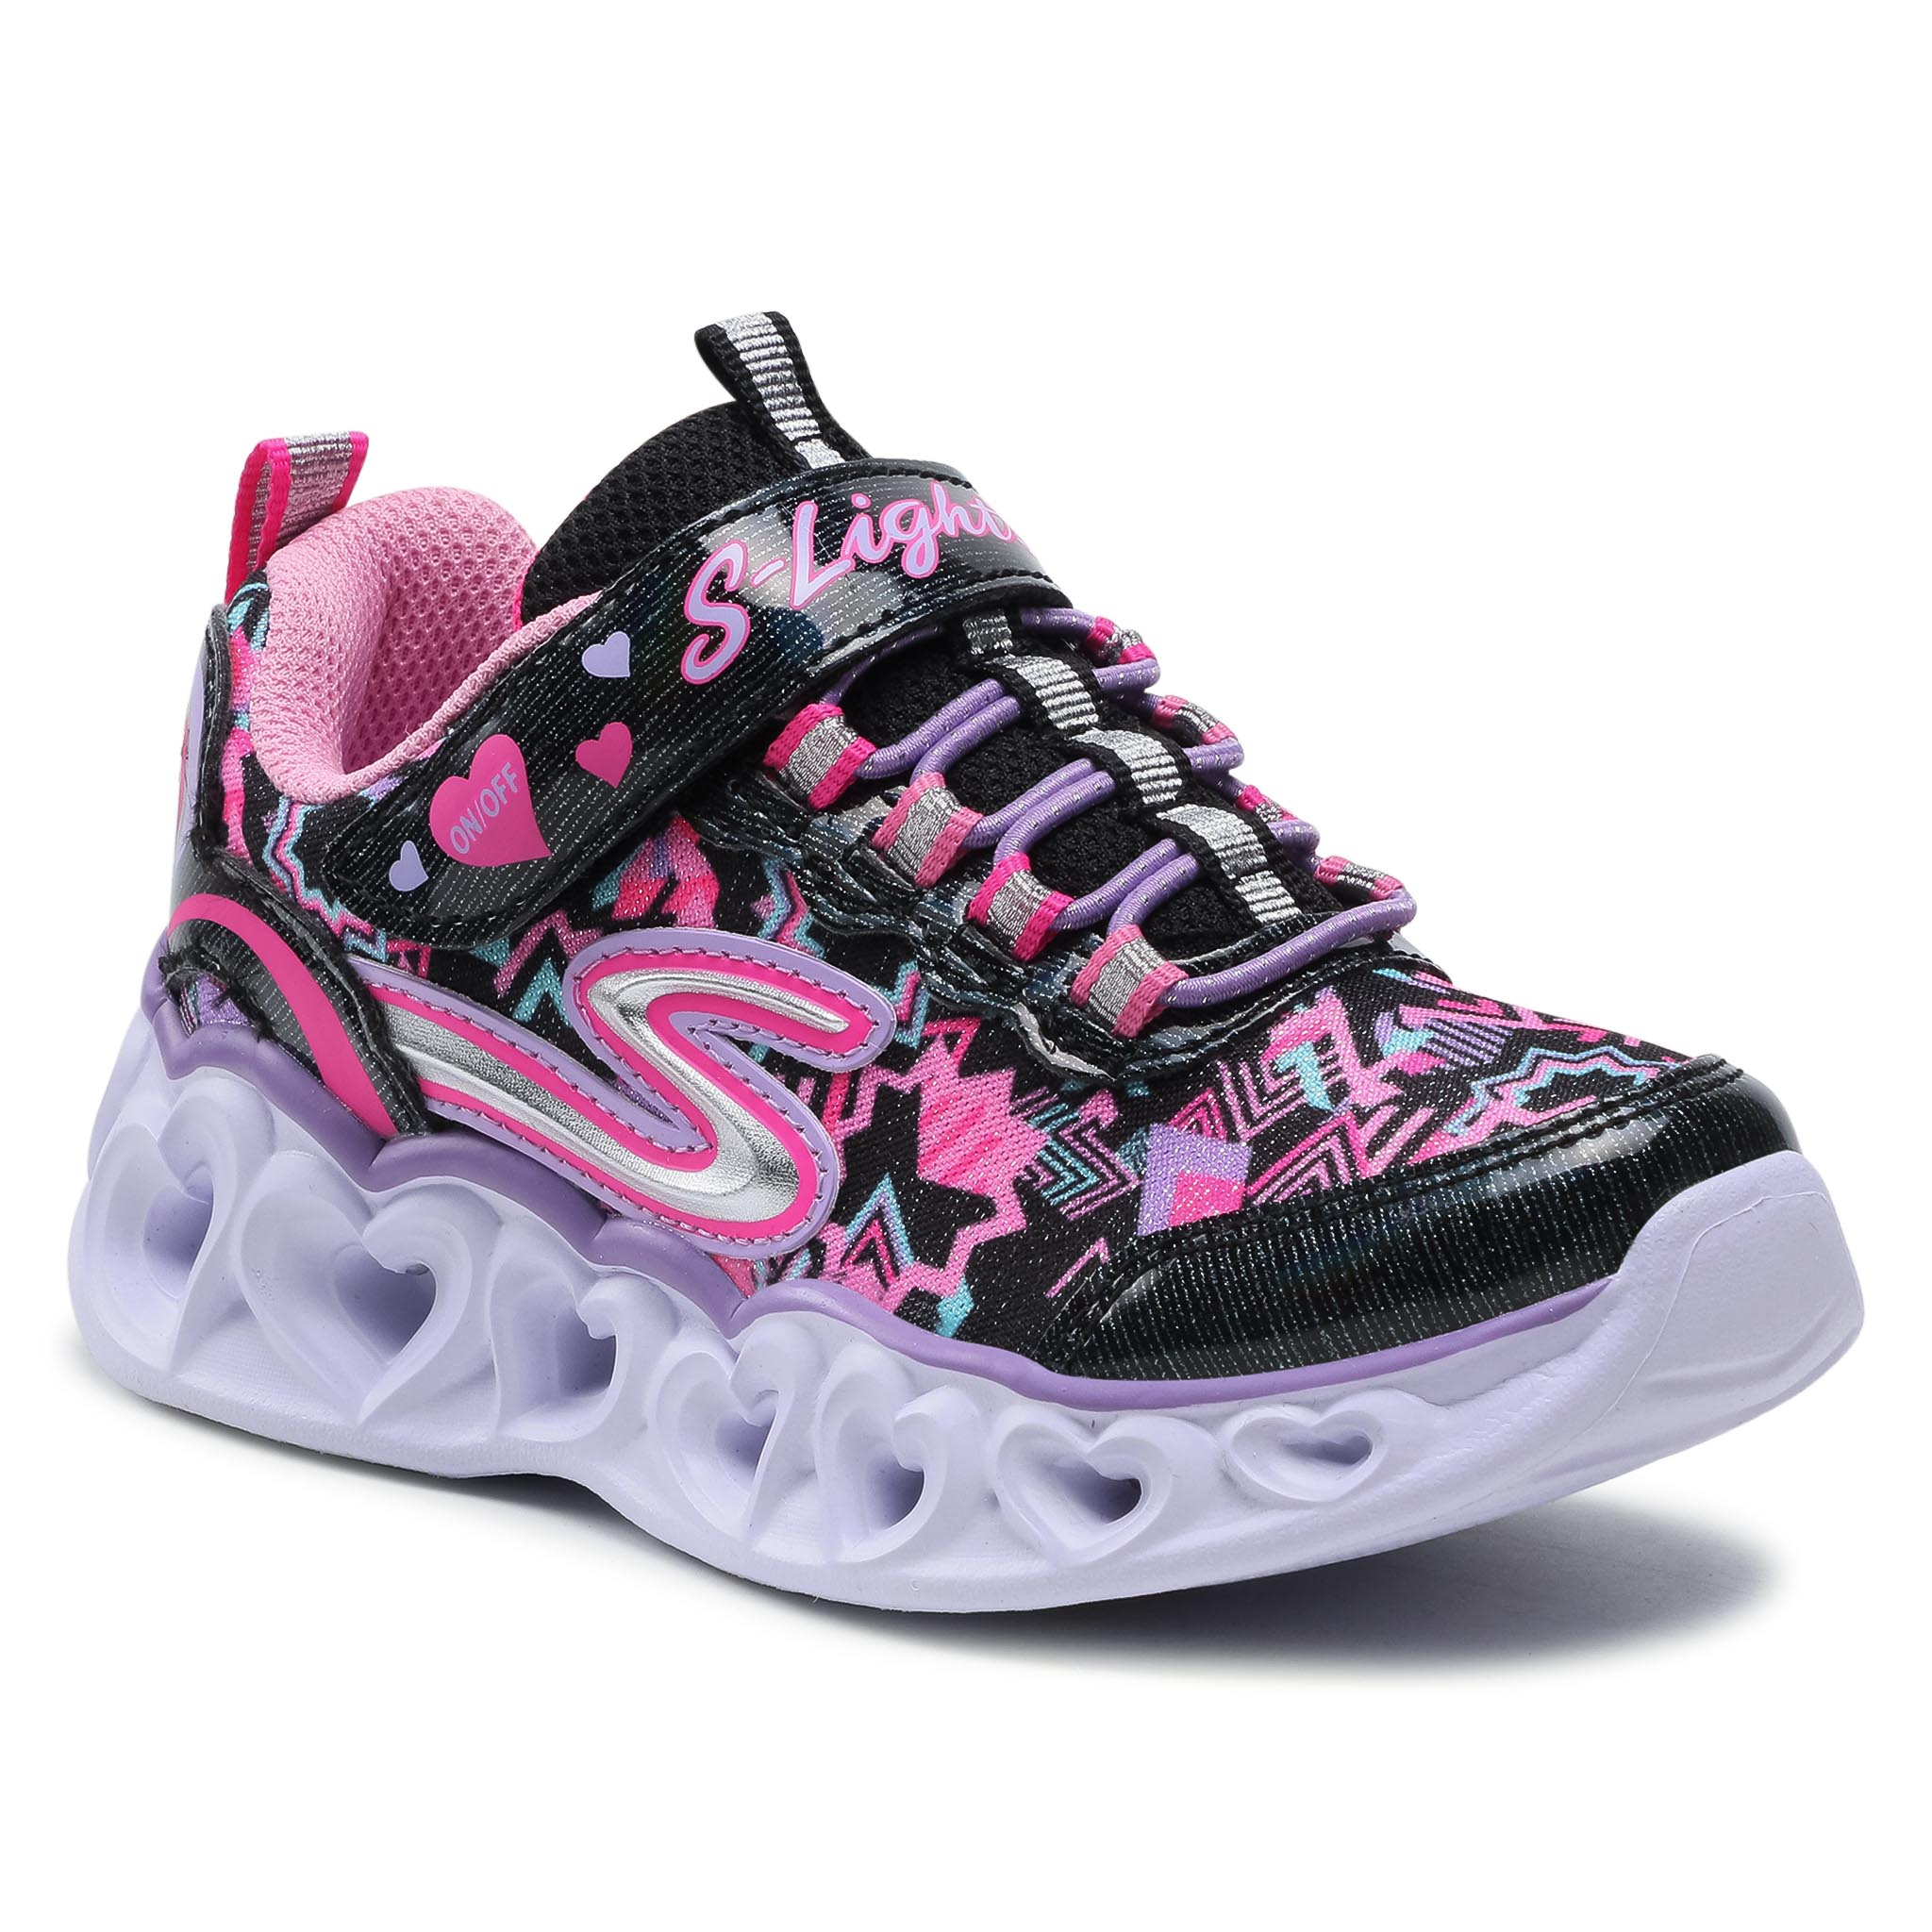 Sneakers SKECHERS - Heart Lights 20180L/BKMT Black/Multi